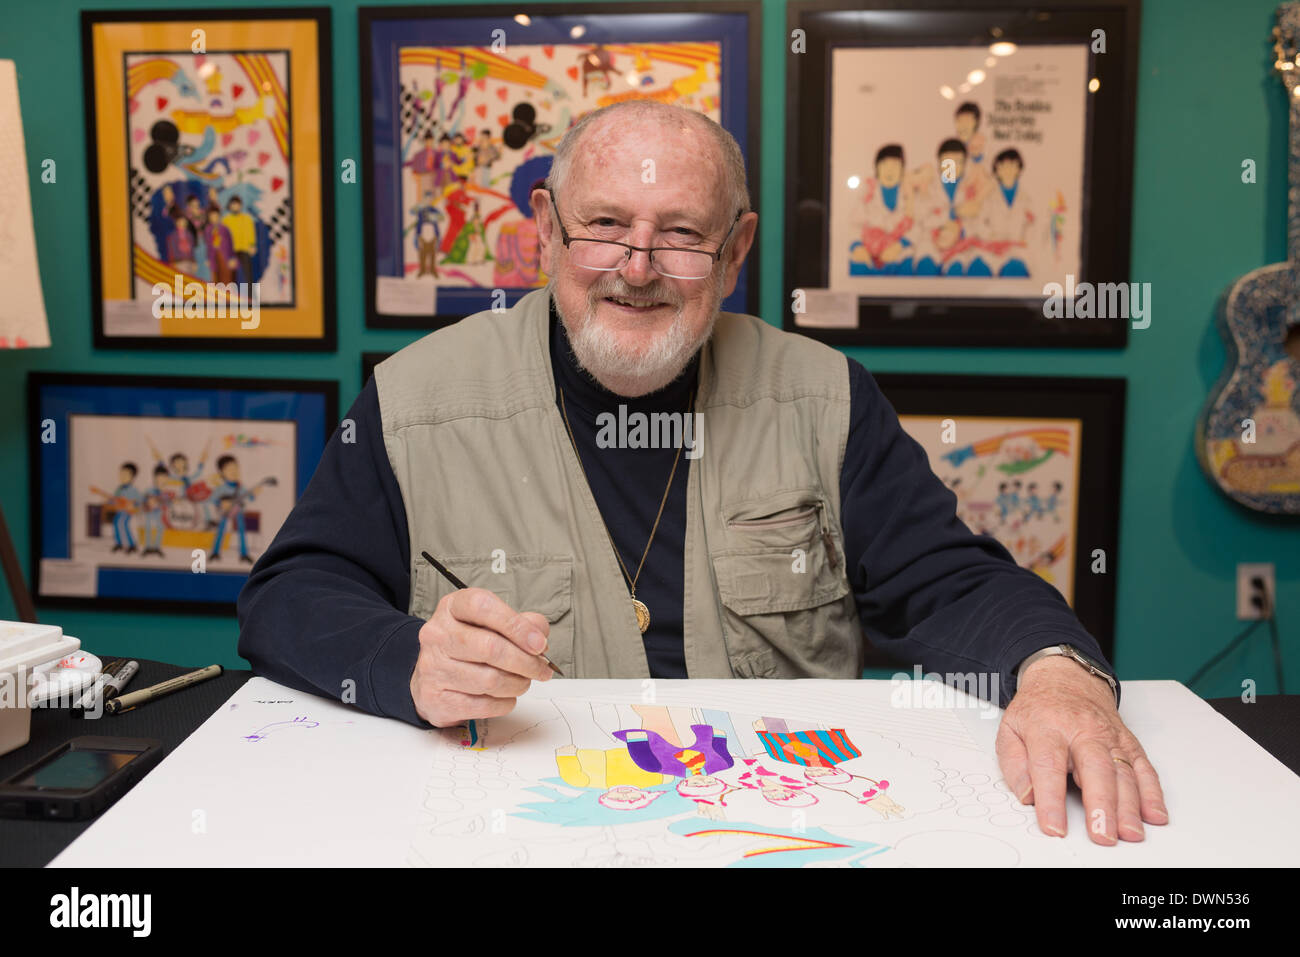 Austin, Texas, USA. March 11, 2014 - Beatles Yellow Submarine animator RON CAMPBELL paints at Wild About Music During Stock Photo